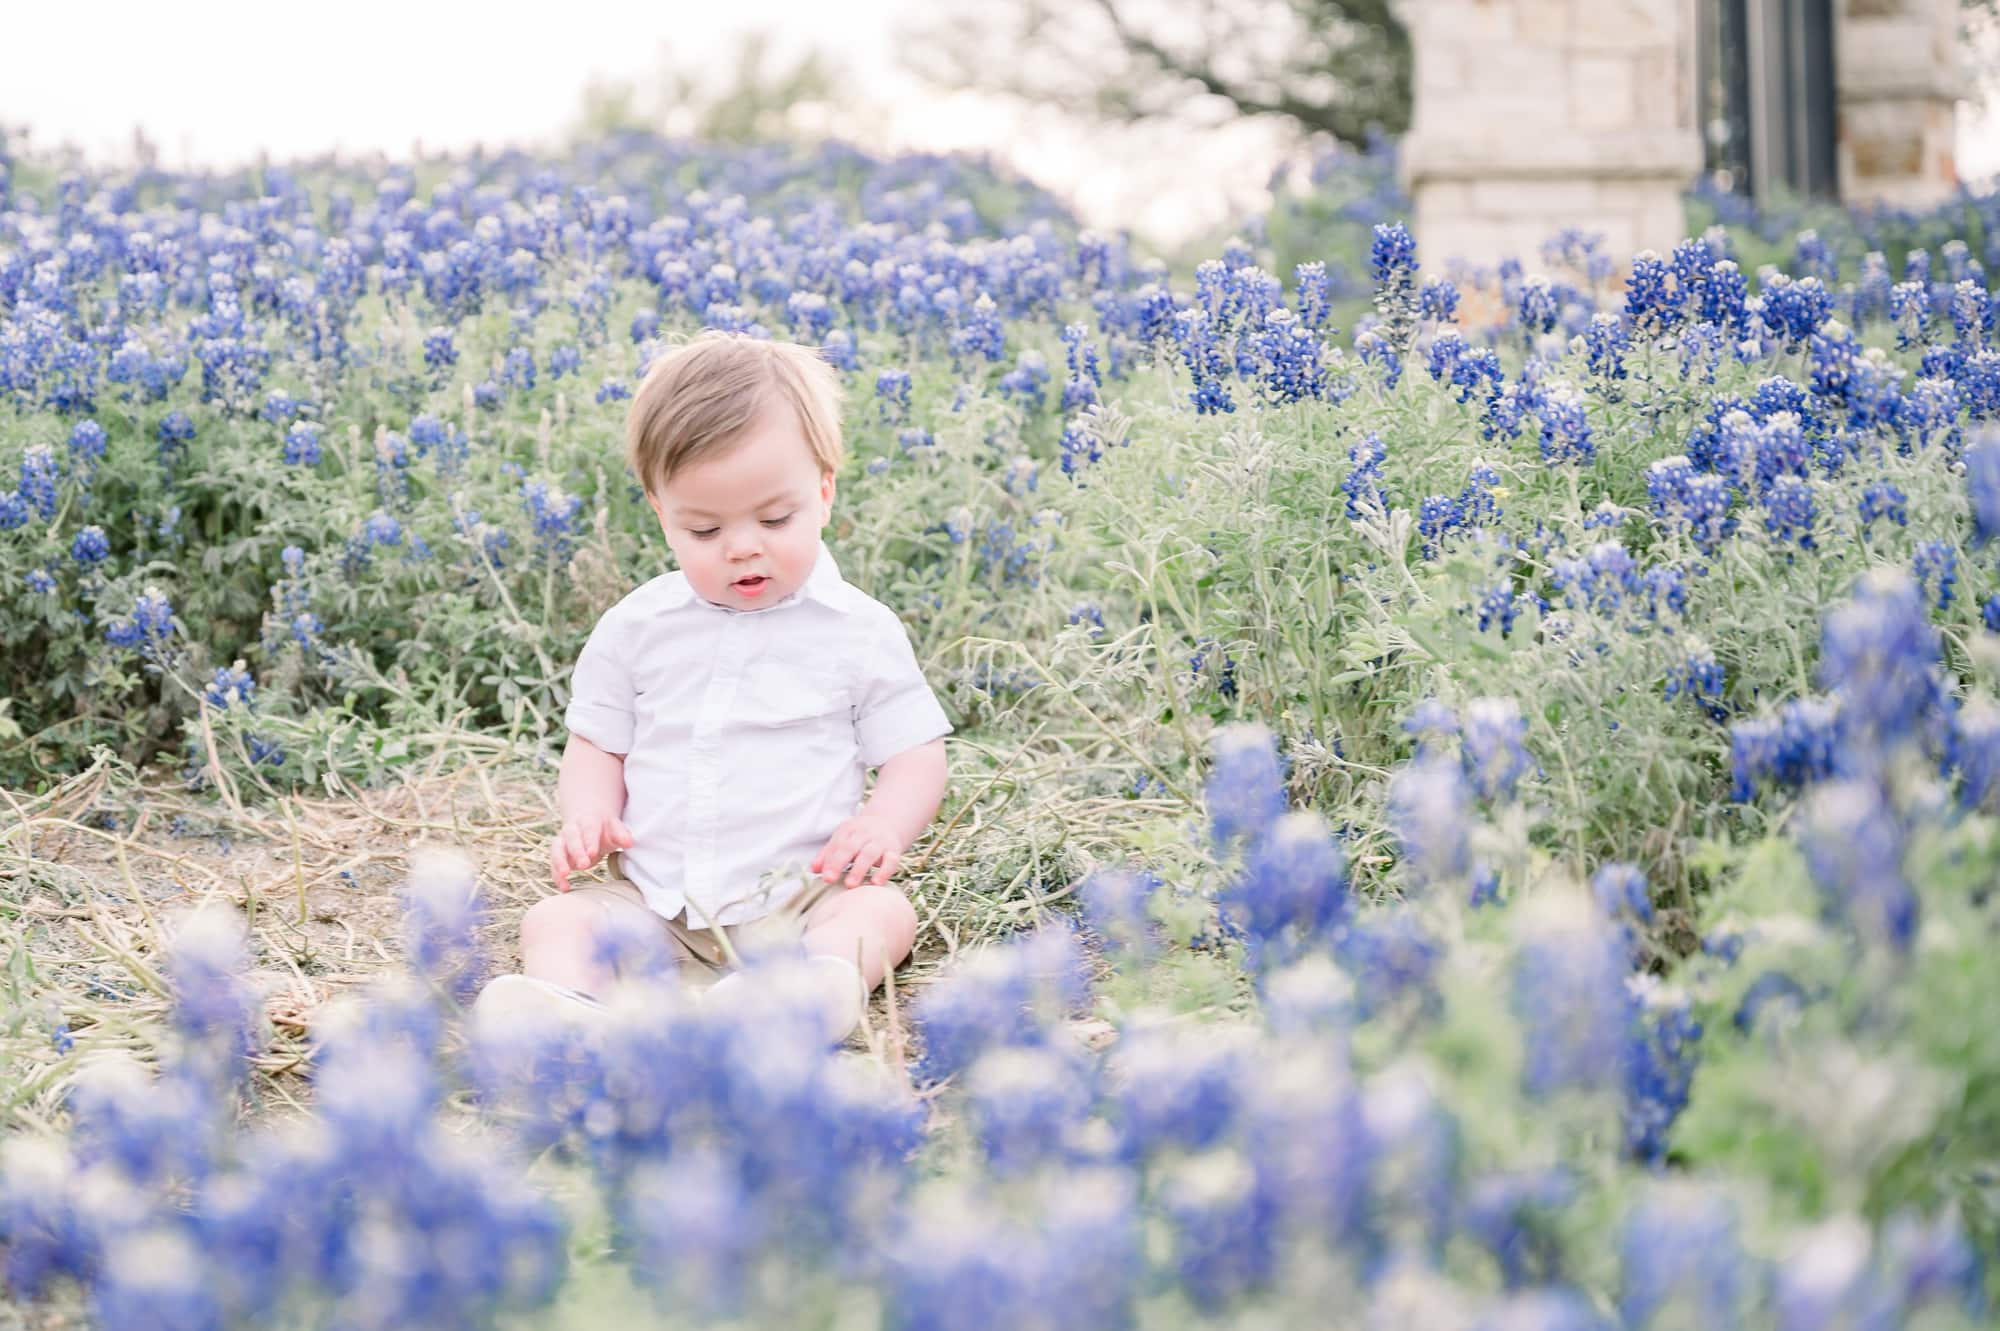 Baby boy looks down at flowers during family session by Prosper family photographer, Aimee Hamilton Photography.